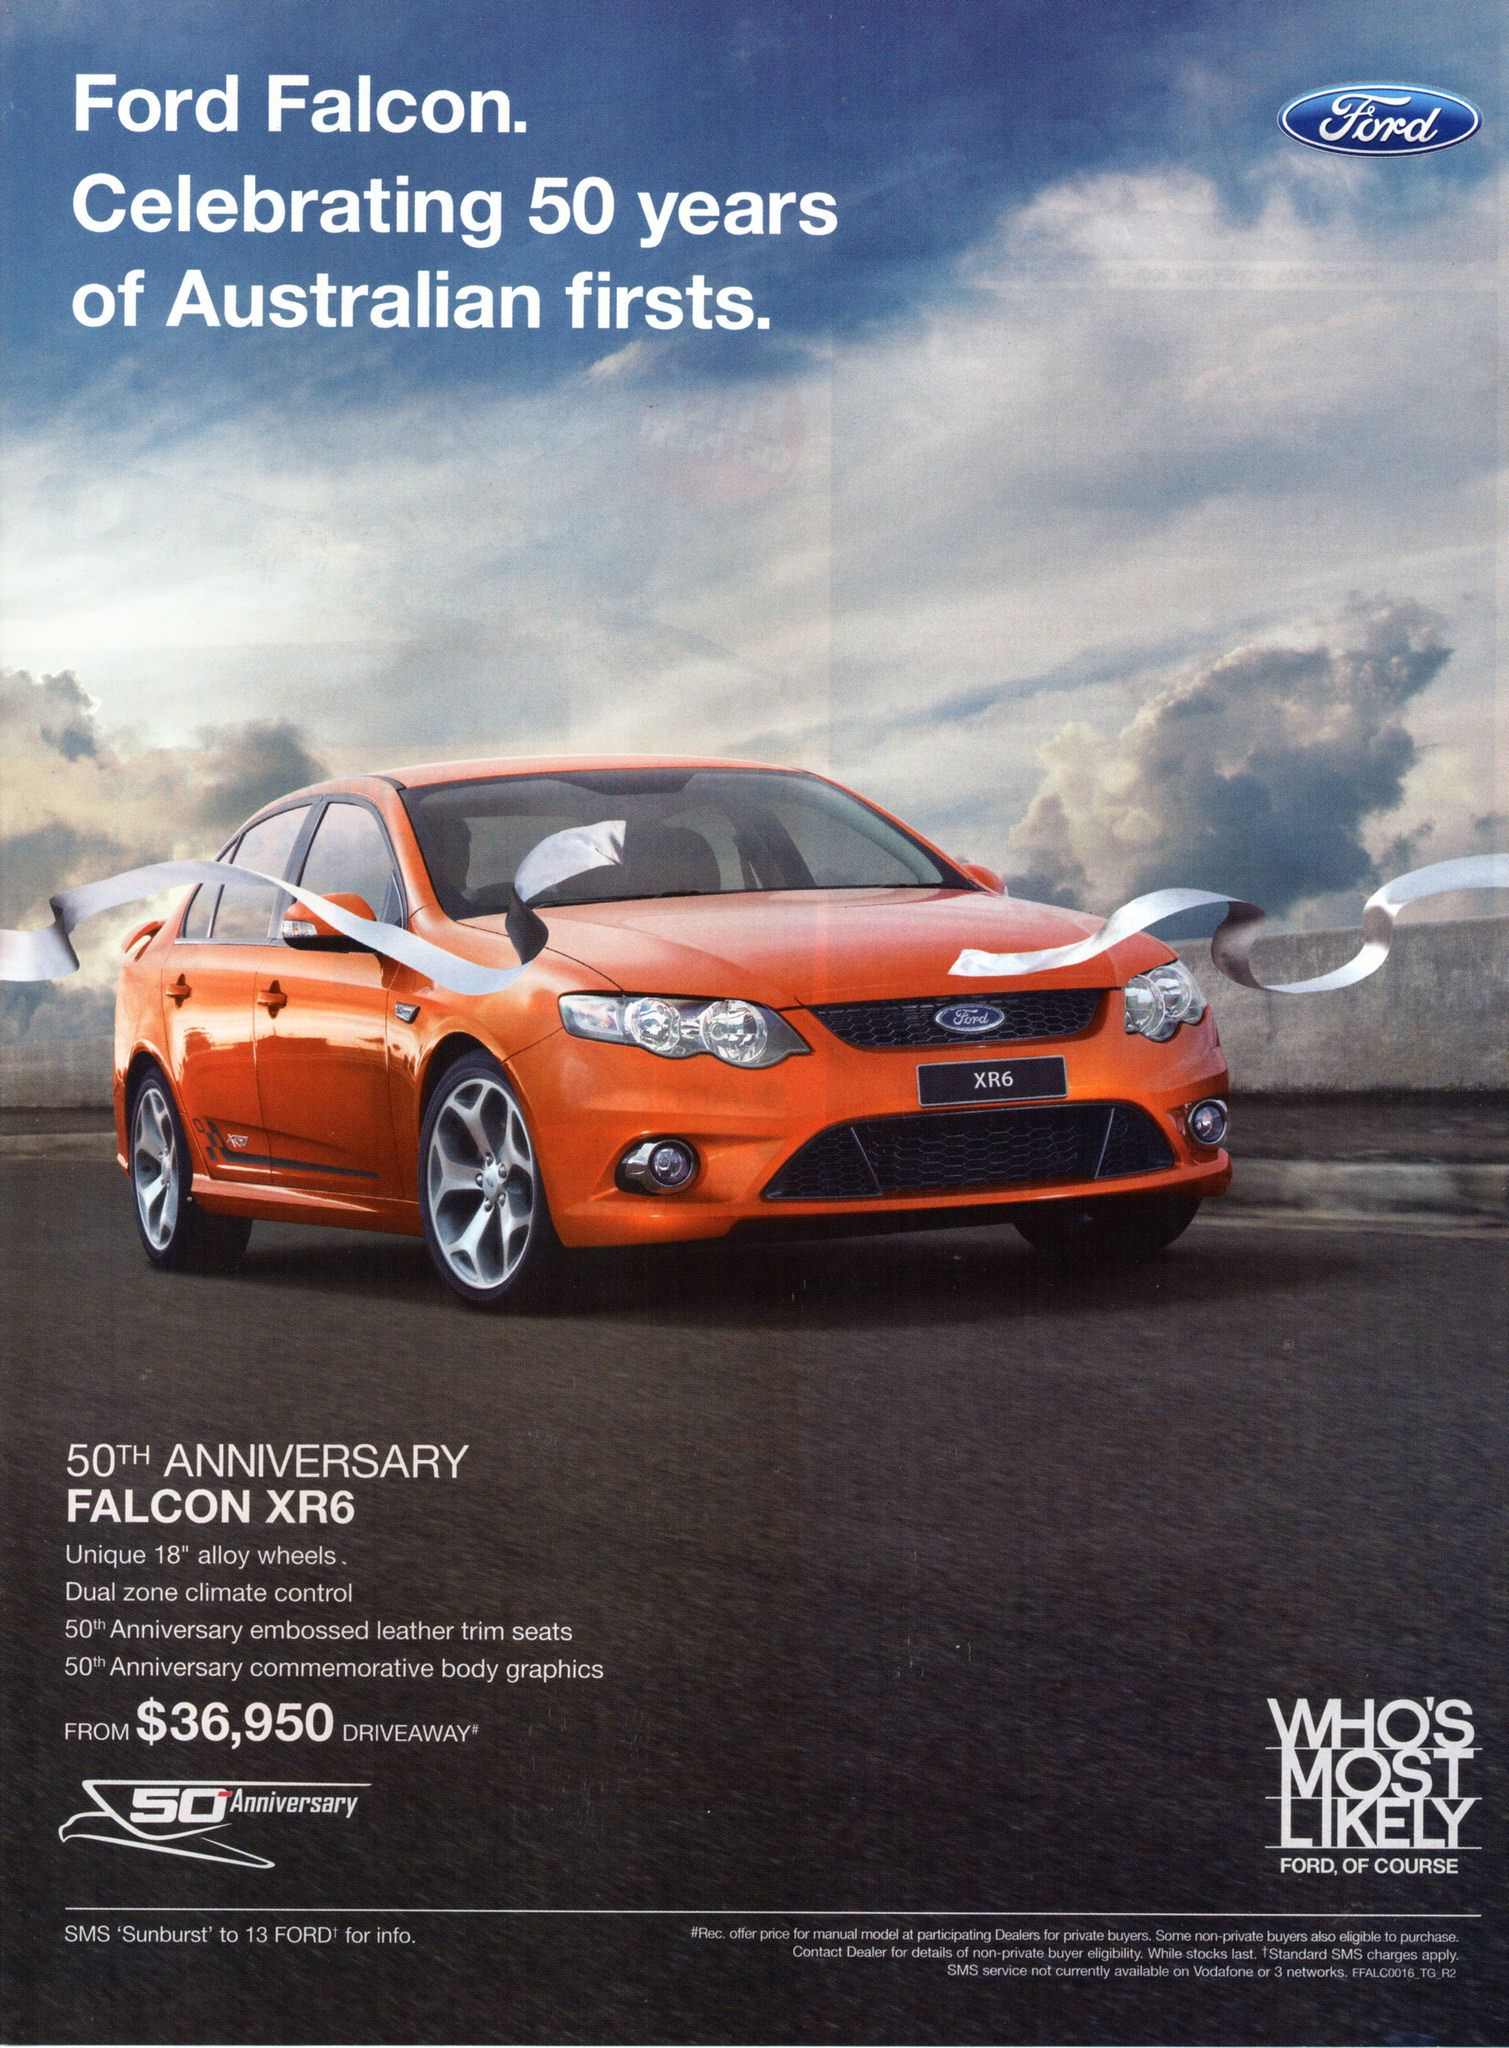 2010 Fg Ford Falcon Xr6 50th Anniversary Aussie Original Magazine